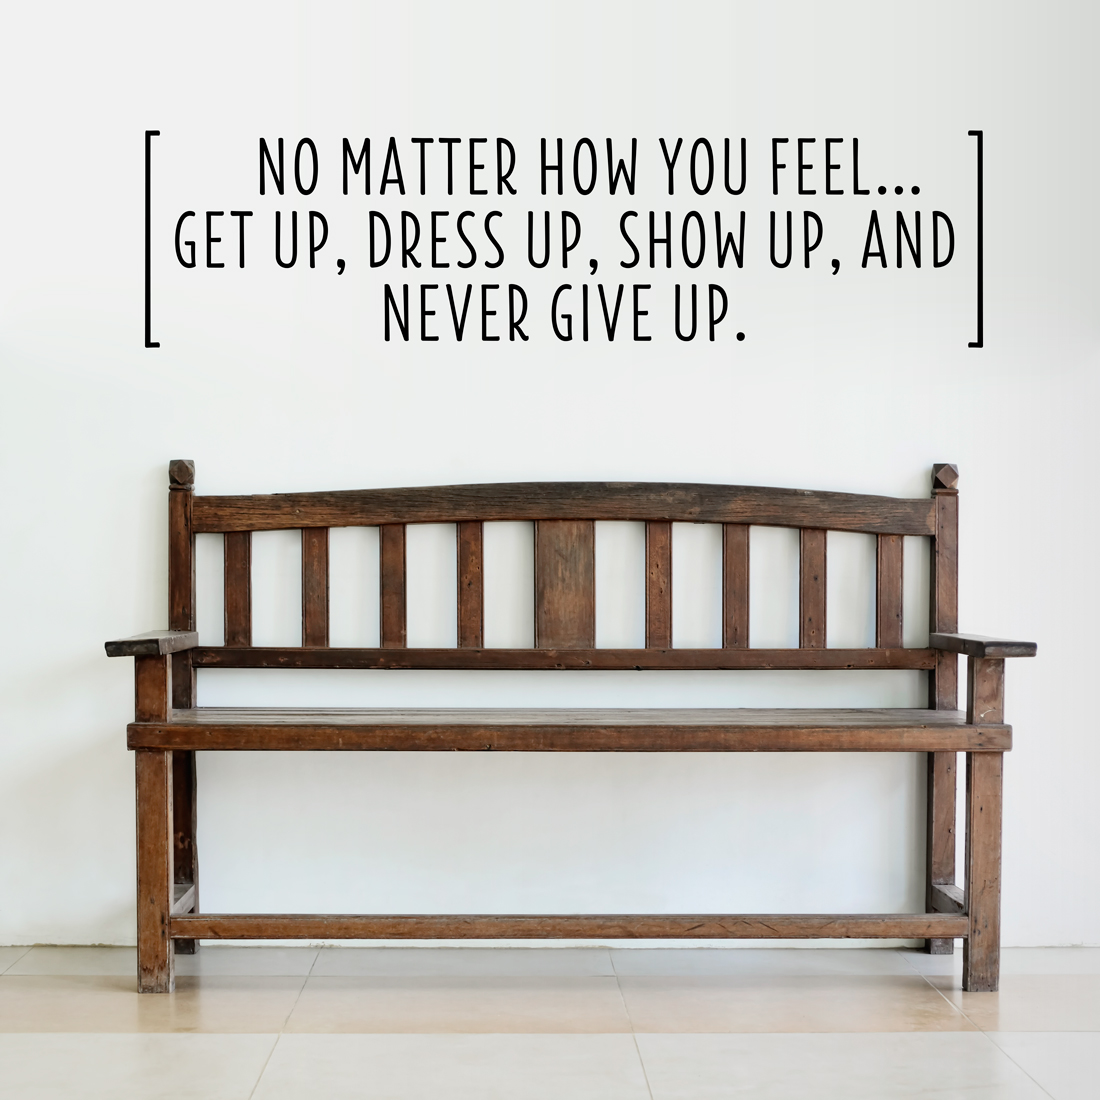 Never Give Up Wall Decal Inspirational Wall Art Decals